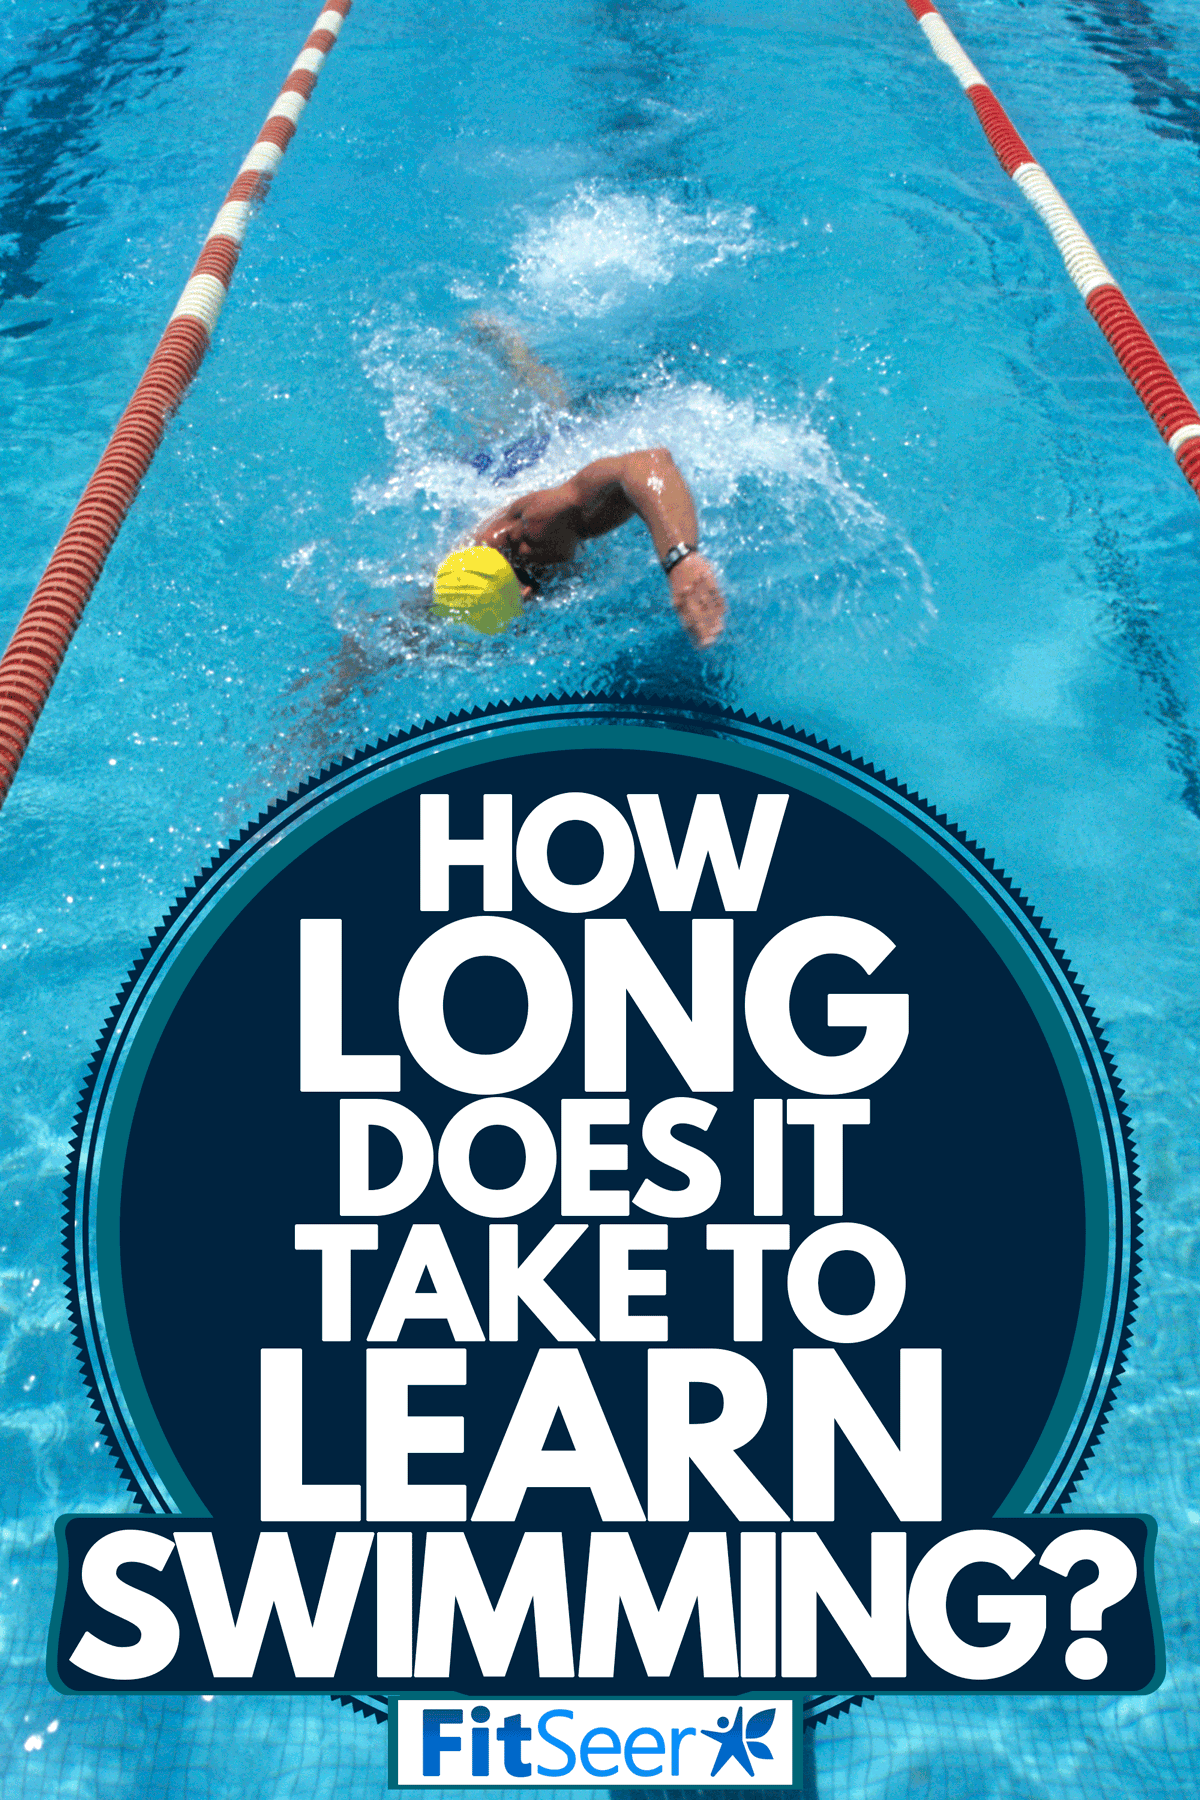 A swimmer using his skills on the swimming pool, How Long Does It Take To Learn Swimming?